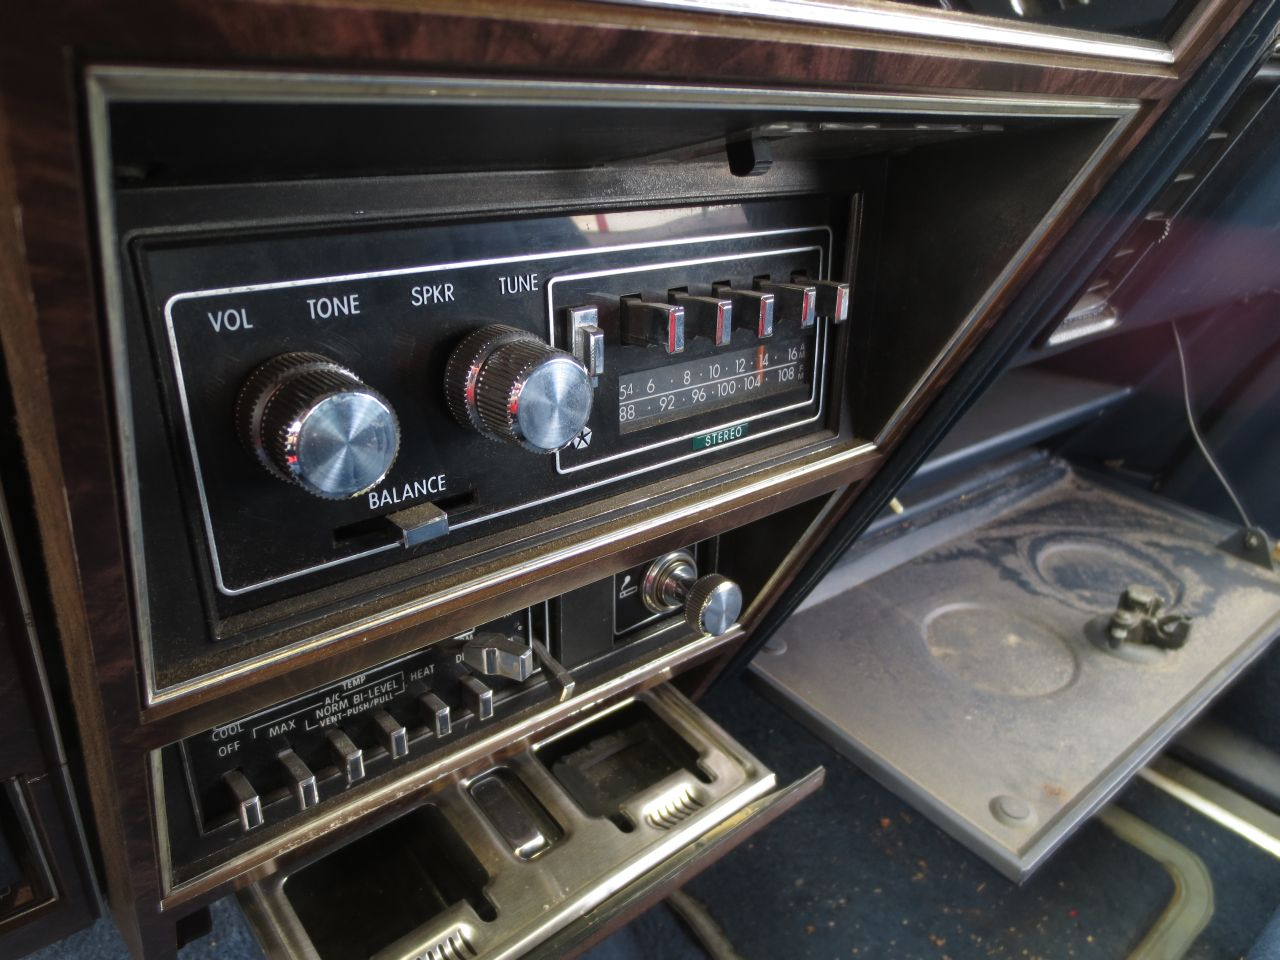 1980 Chrysler LeBaron Interior